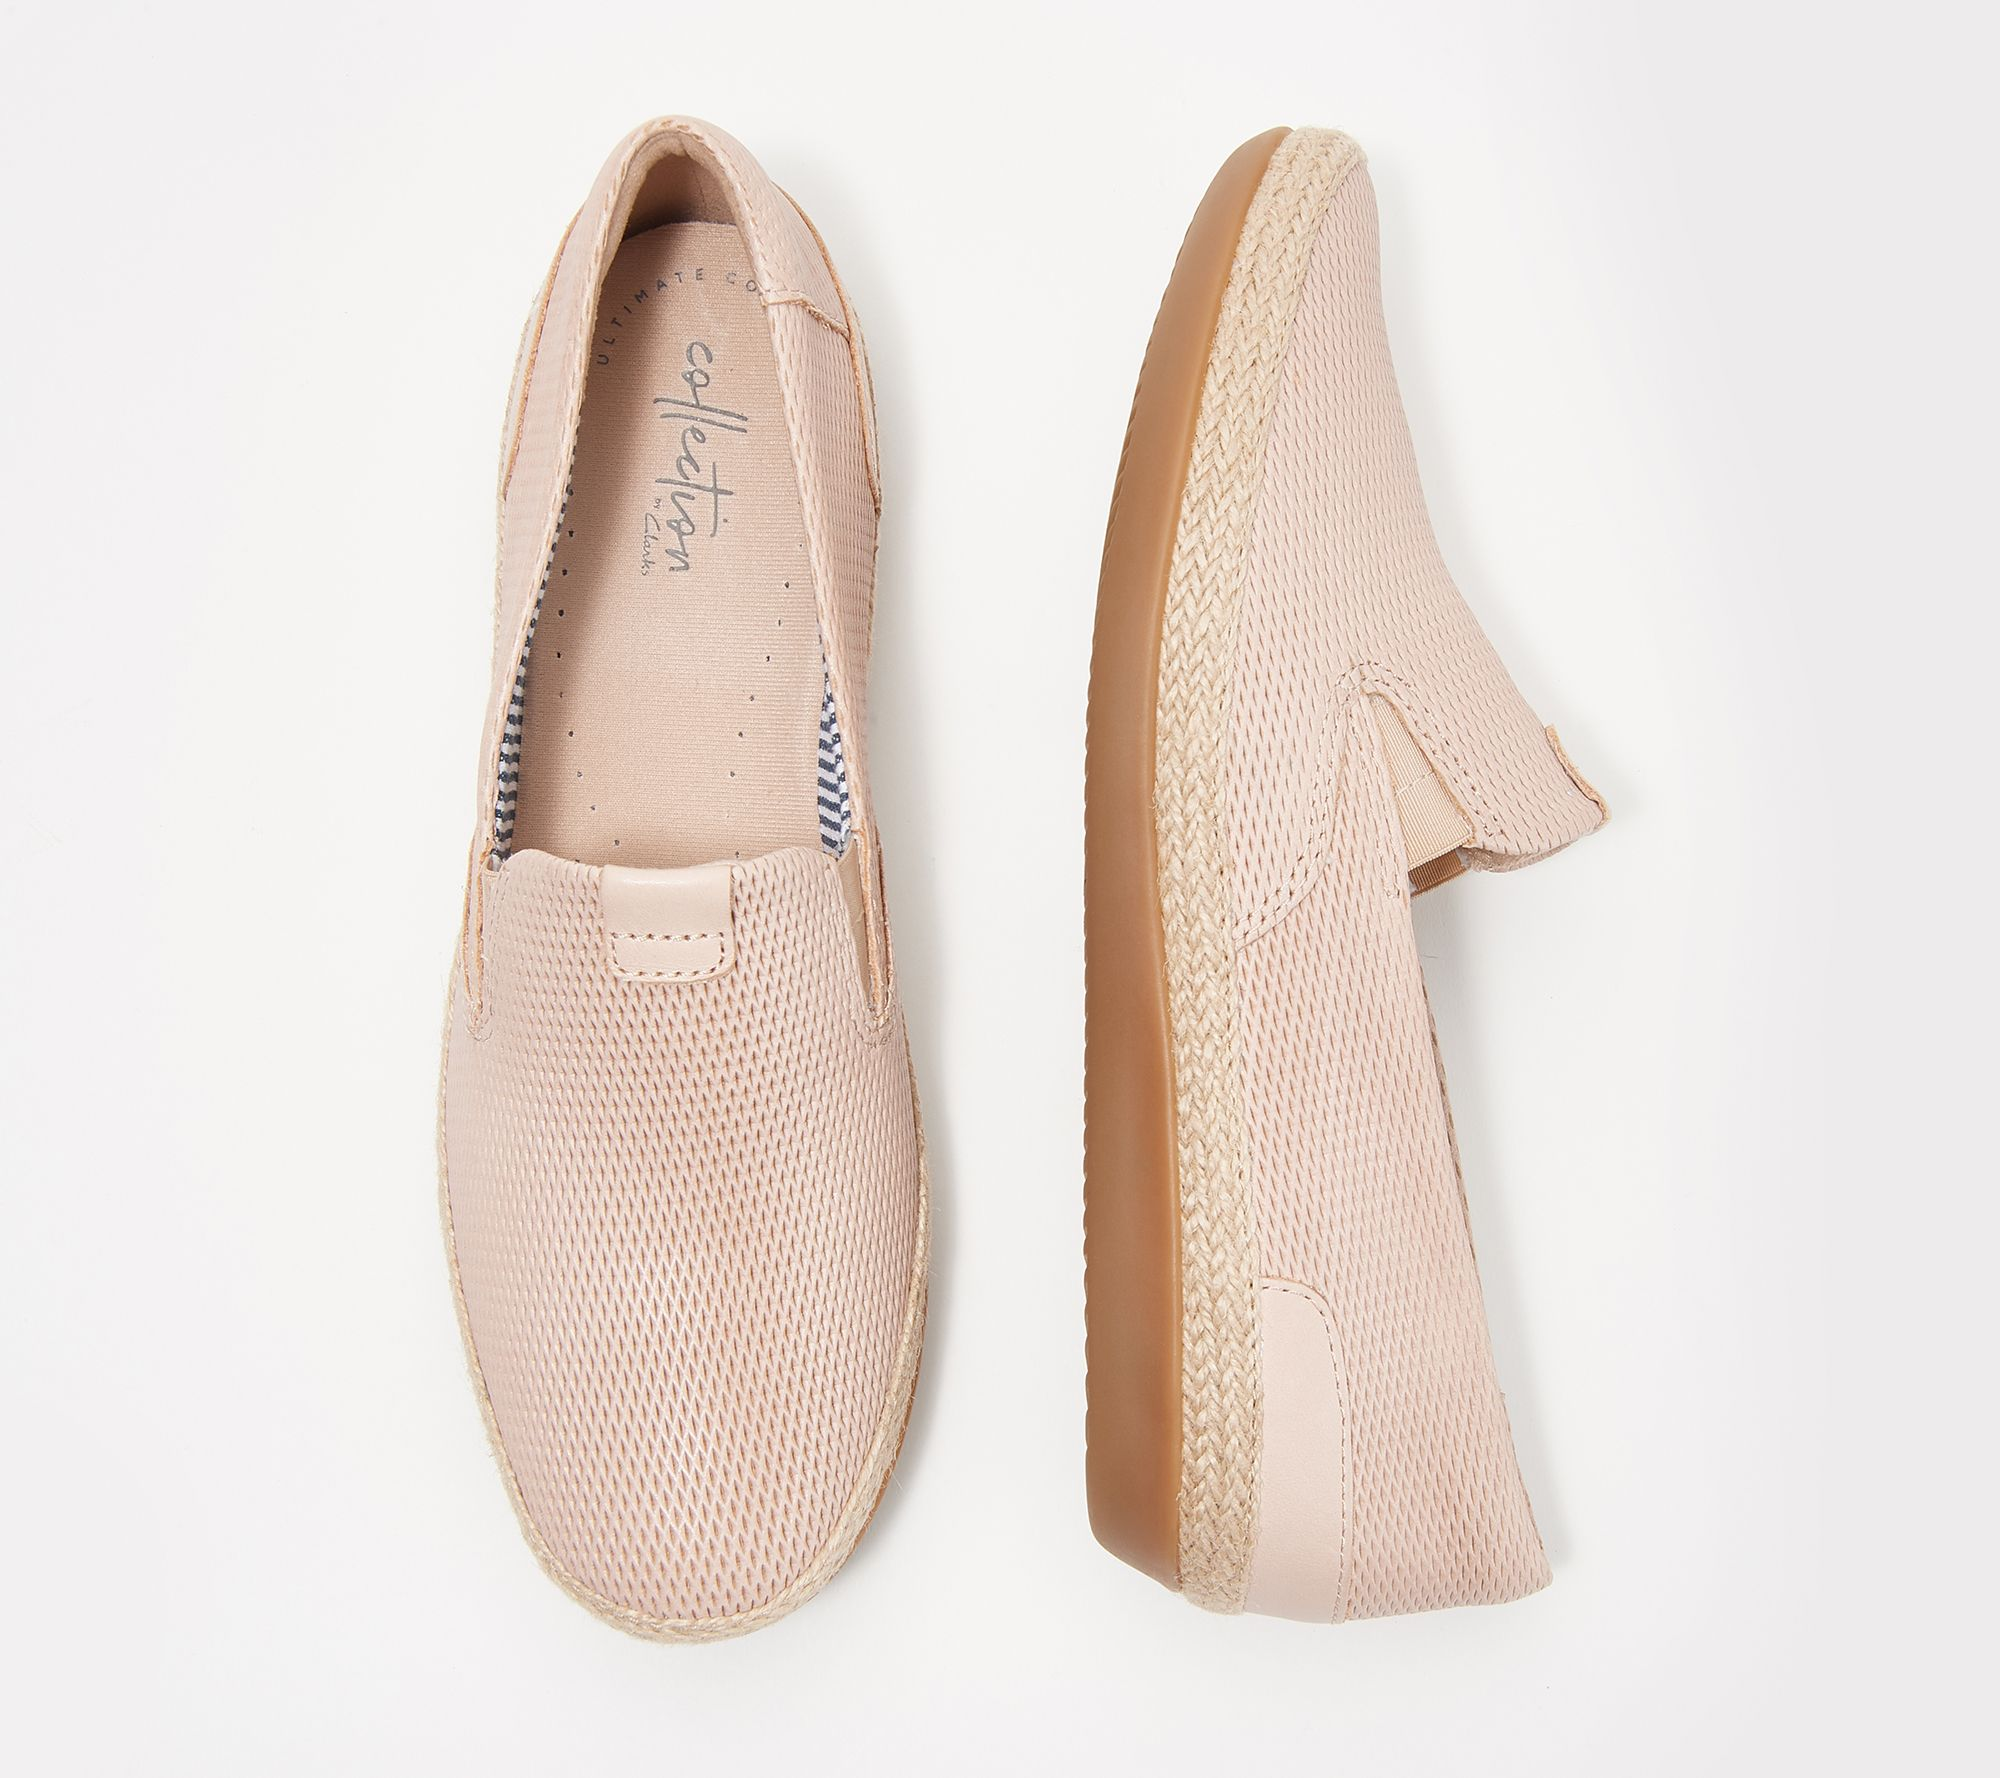 b0c69adf11c Clarks Collection Leather Slip-Ons - Danelly Iris - Page 1 — QVC.com